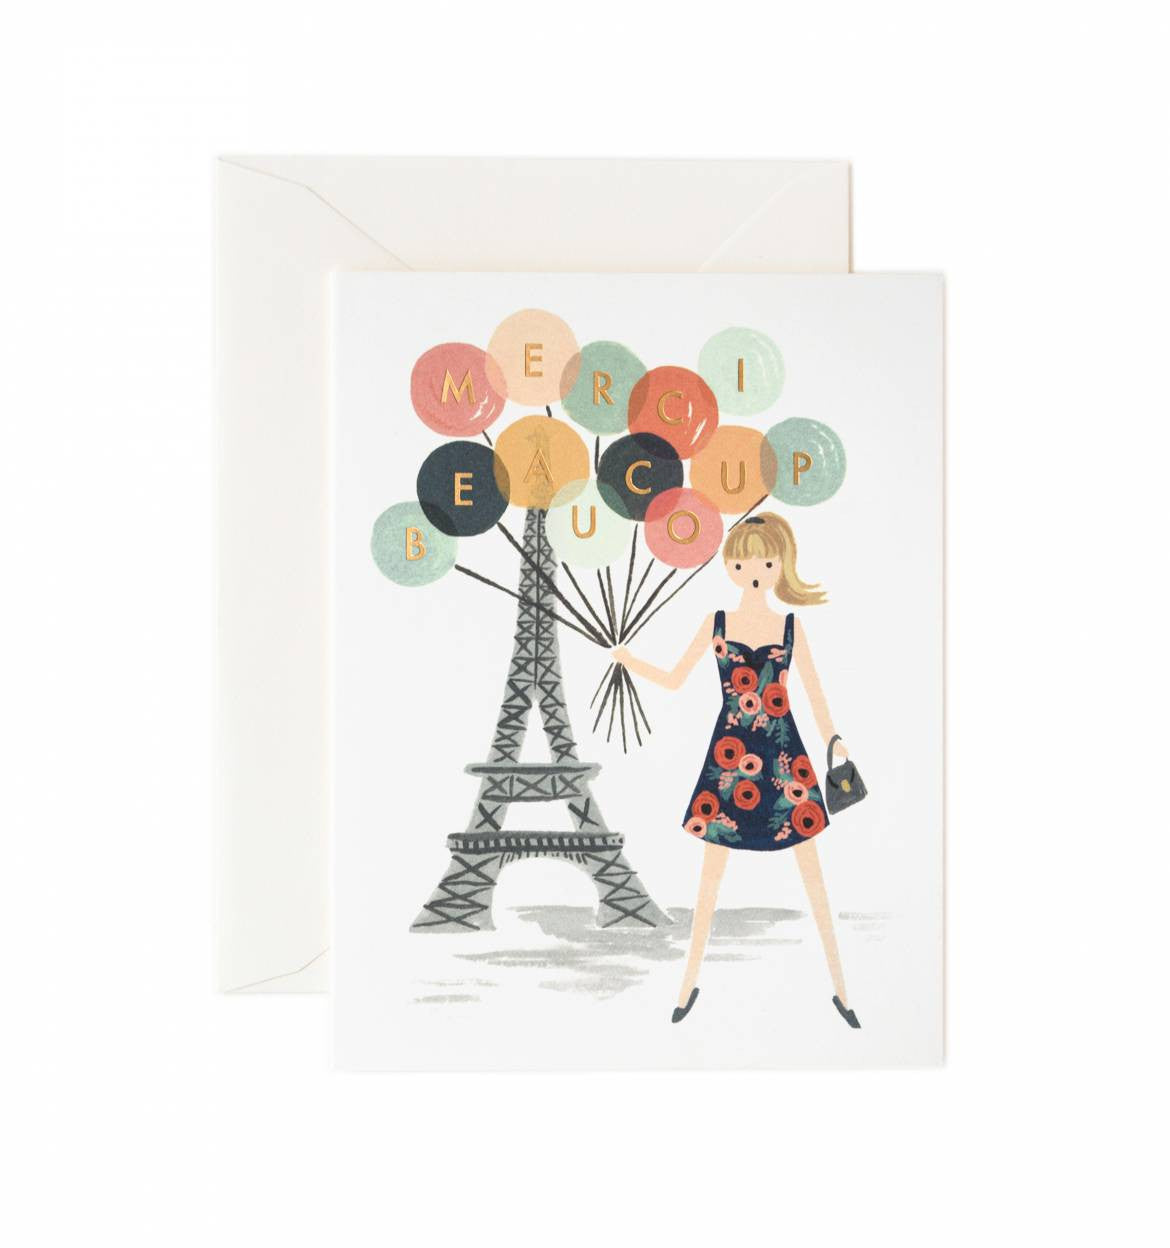 Merci Beacoup Single Greeting Card